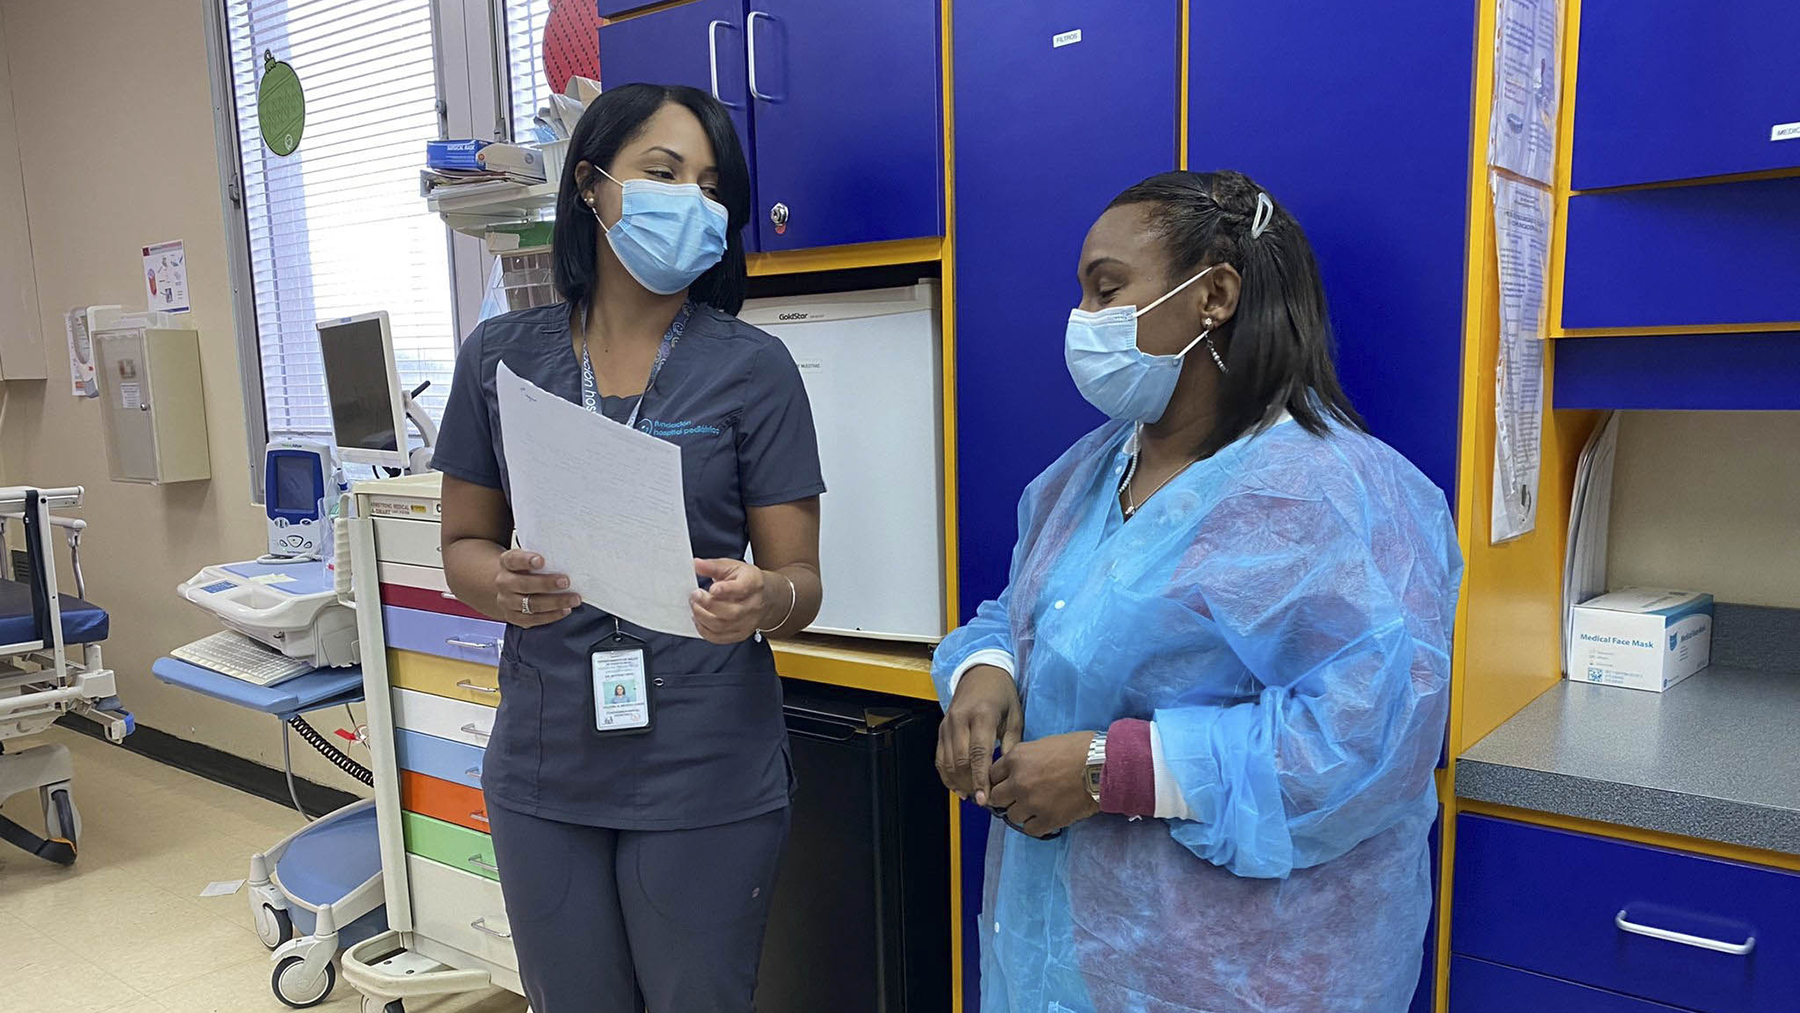 Valeria Méndez, left, consults with a colleague. (Photo courtesy of the Pediatric Hospital Foundation)